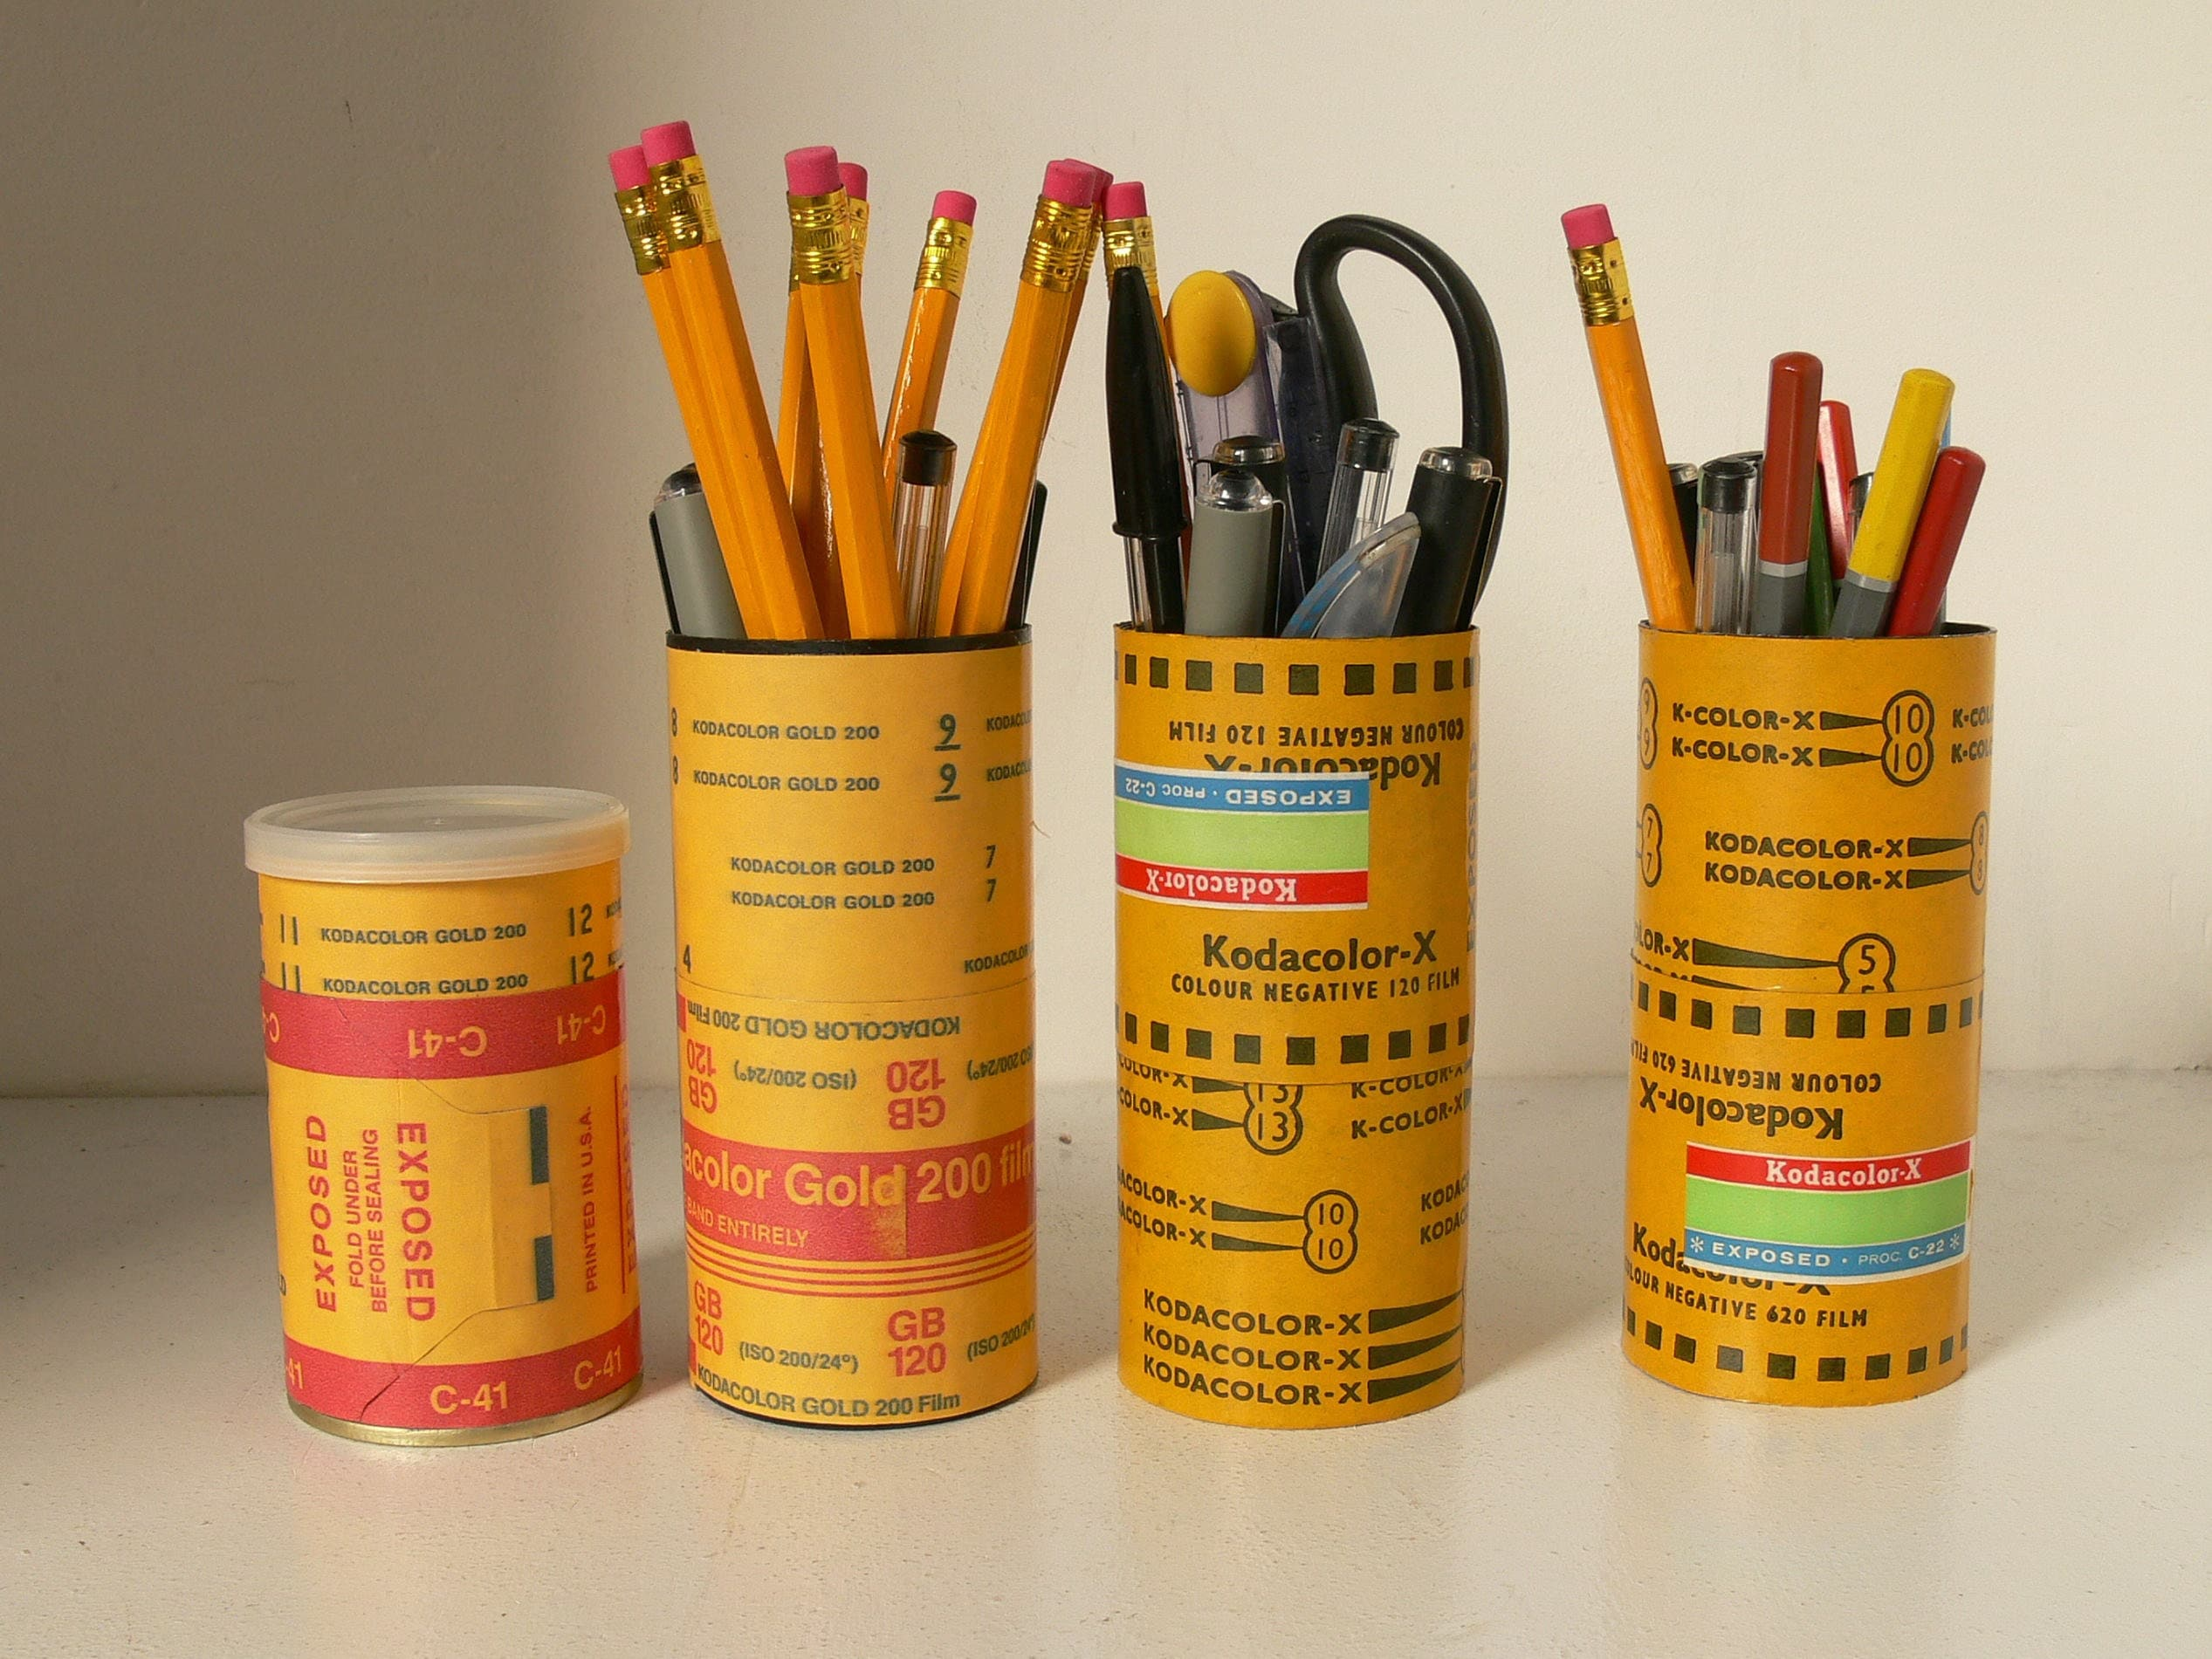 Cute Storage Tins  Canister With 120 Film Decoration  Ideal Pencil Pot Or Desk Tidy